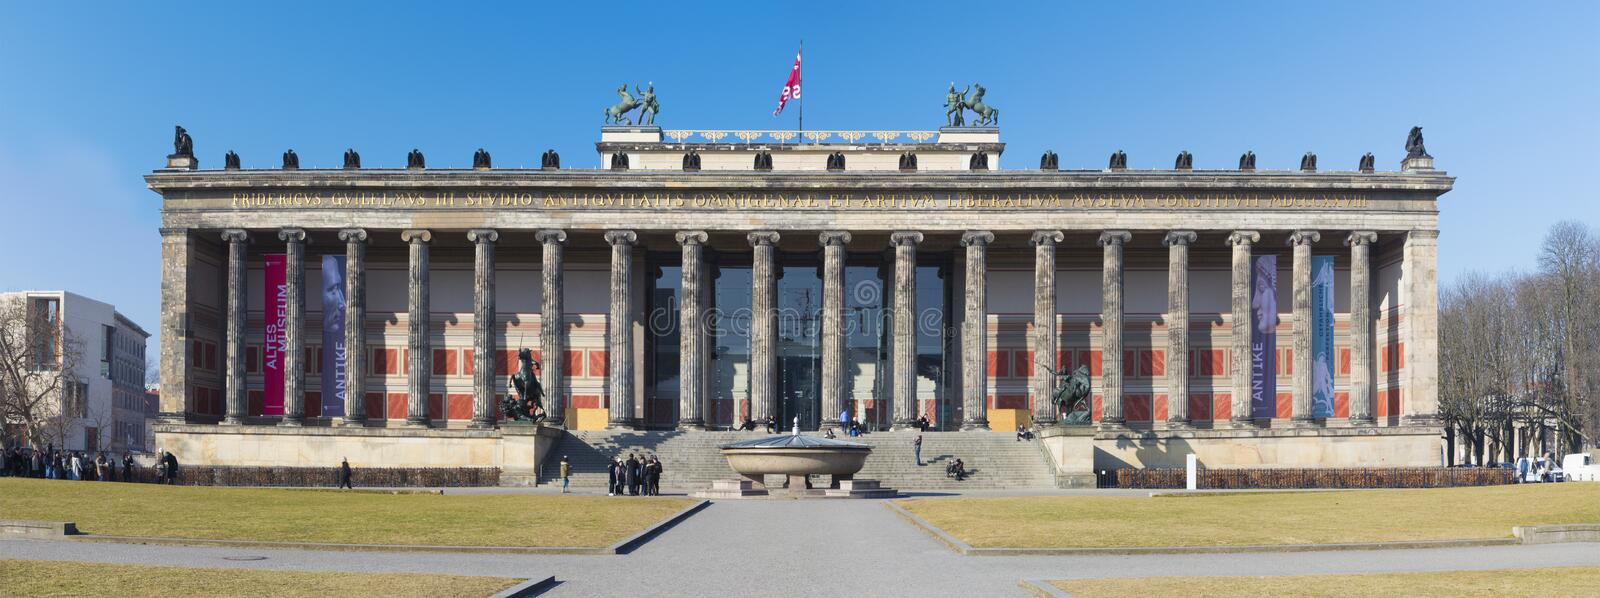 BERLIN, GERMANY, FEBRUARY - 14, 2017: The classical building of Old National Gallery Altes Museum stock images